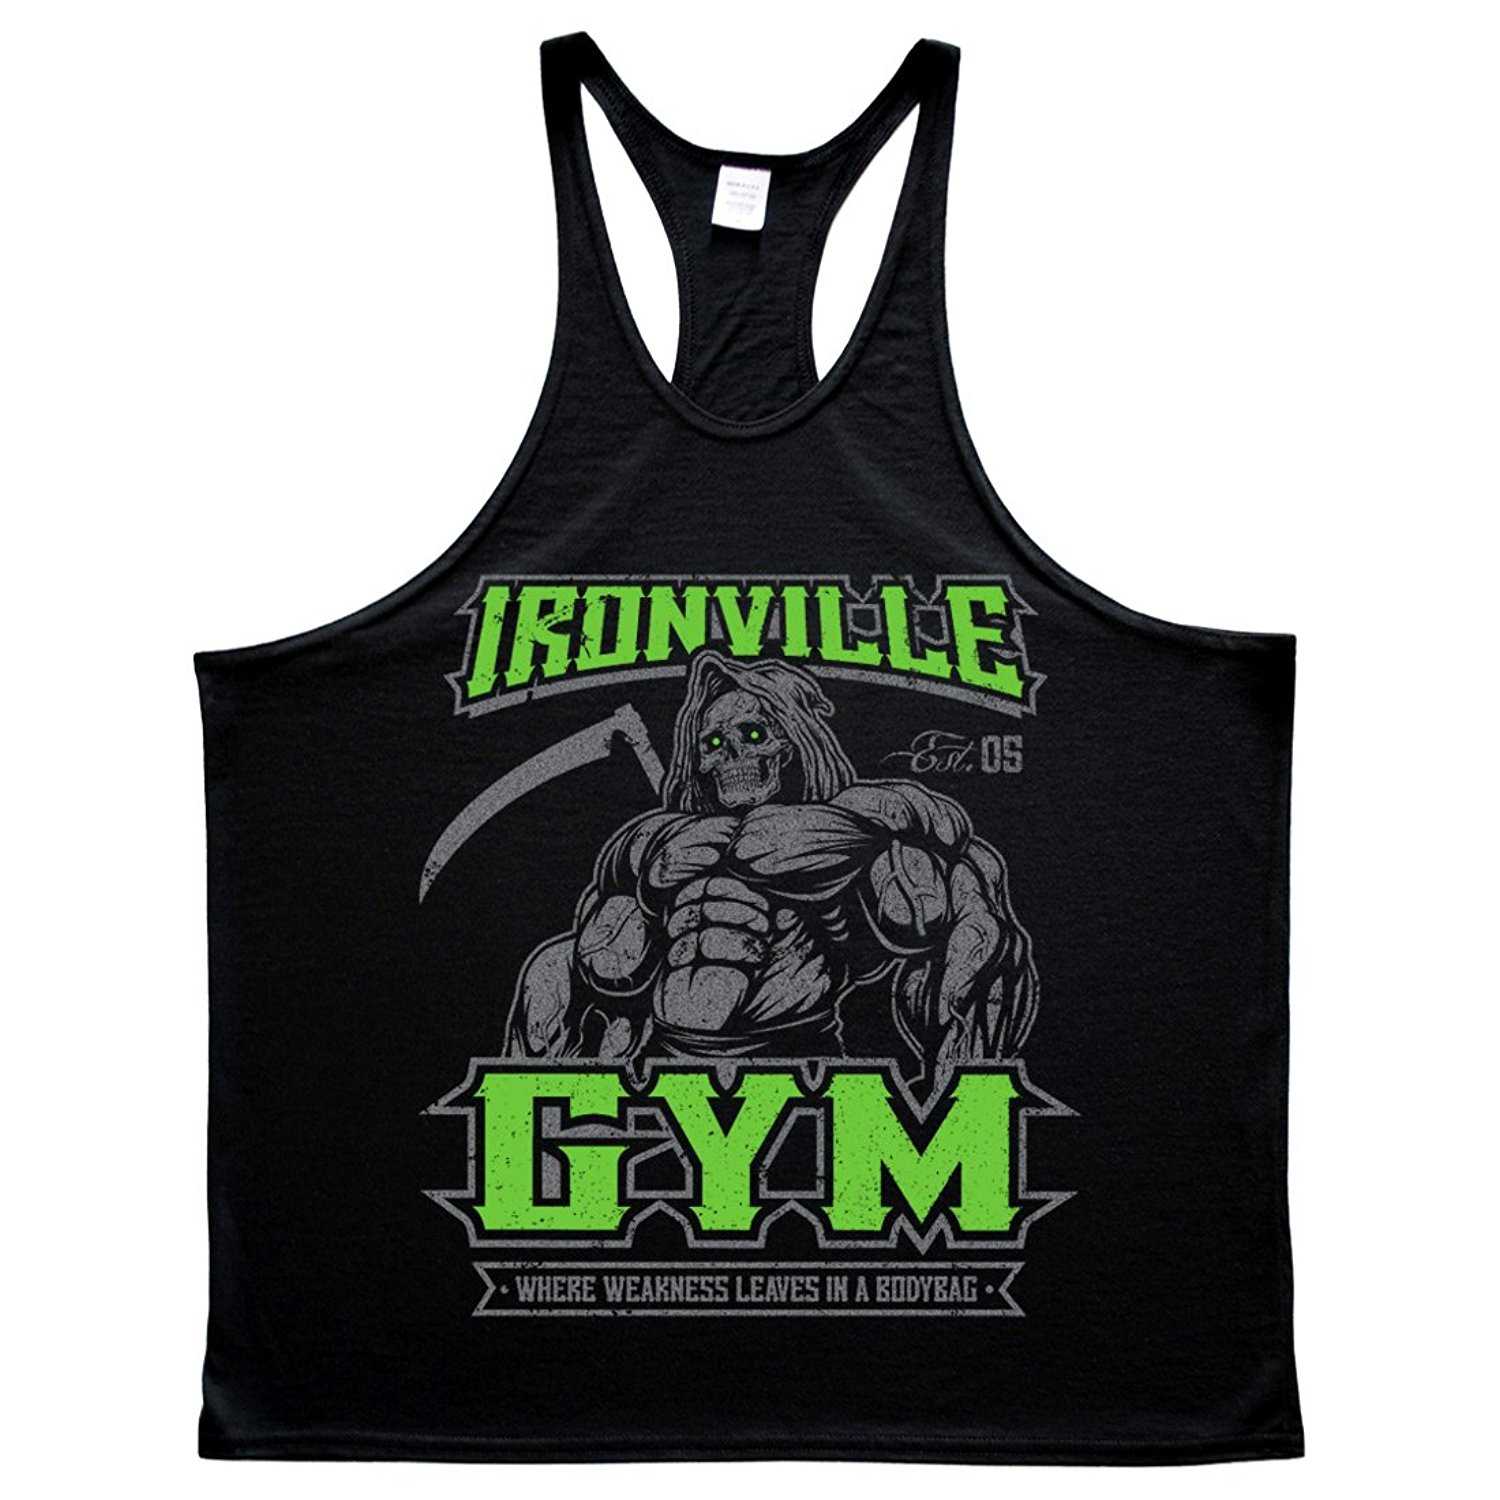 38302ce432c11f Get Quotations · Ironville Gym Reaper - Where Weakness Leaves In A Bodybag  Lifting Stringer Tank